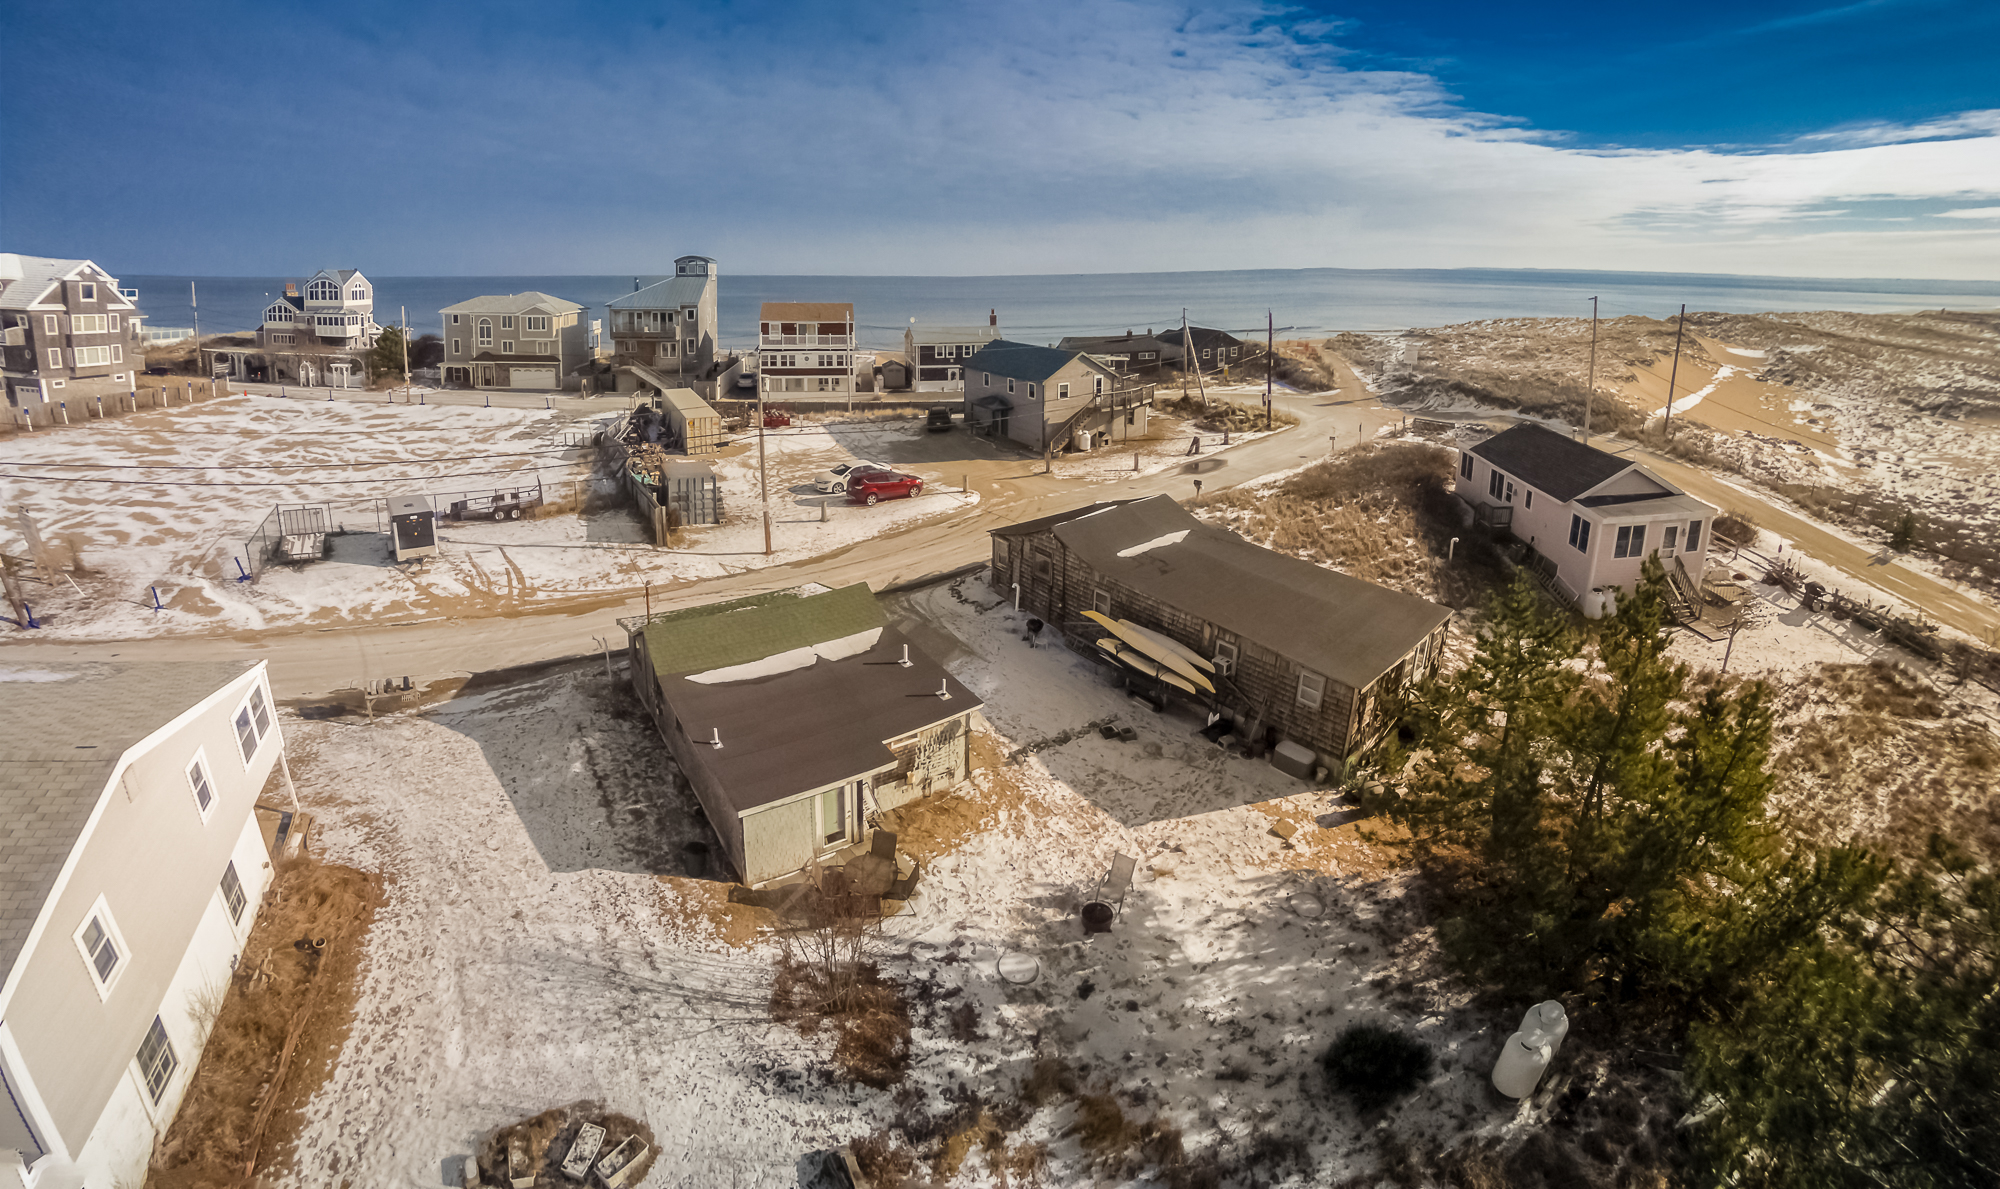 Single Family Home for Sale at Plum Island Retreat 80 Southern Blvd Newbury, Massachusetts 01951 United States